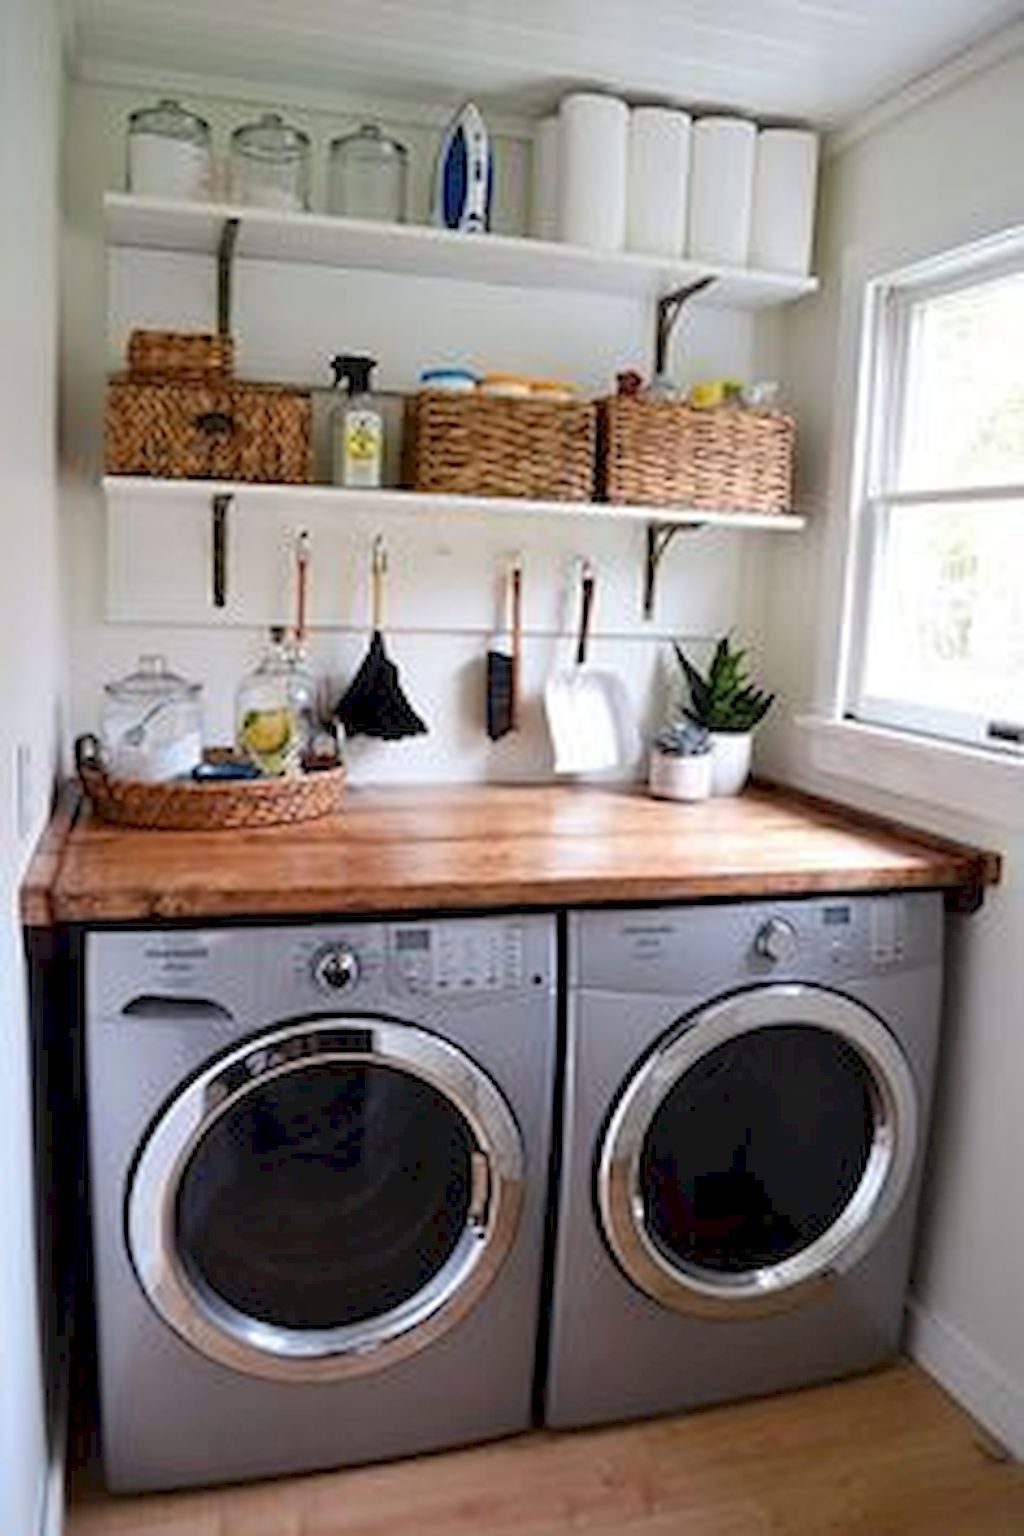 Cool 6 First Apartment Laundry Room Decor Ideas Remodel https